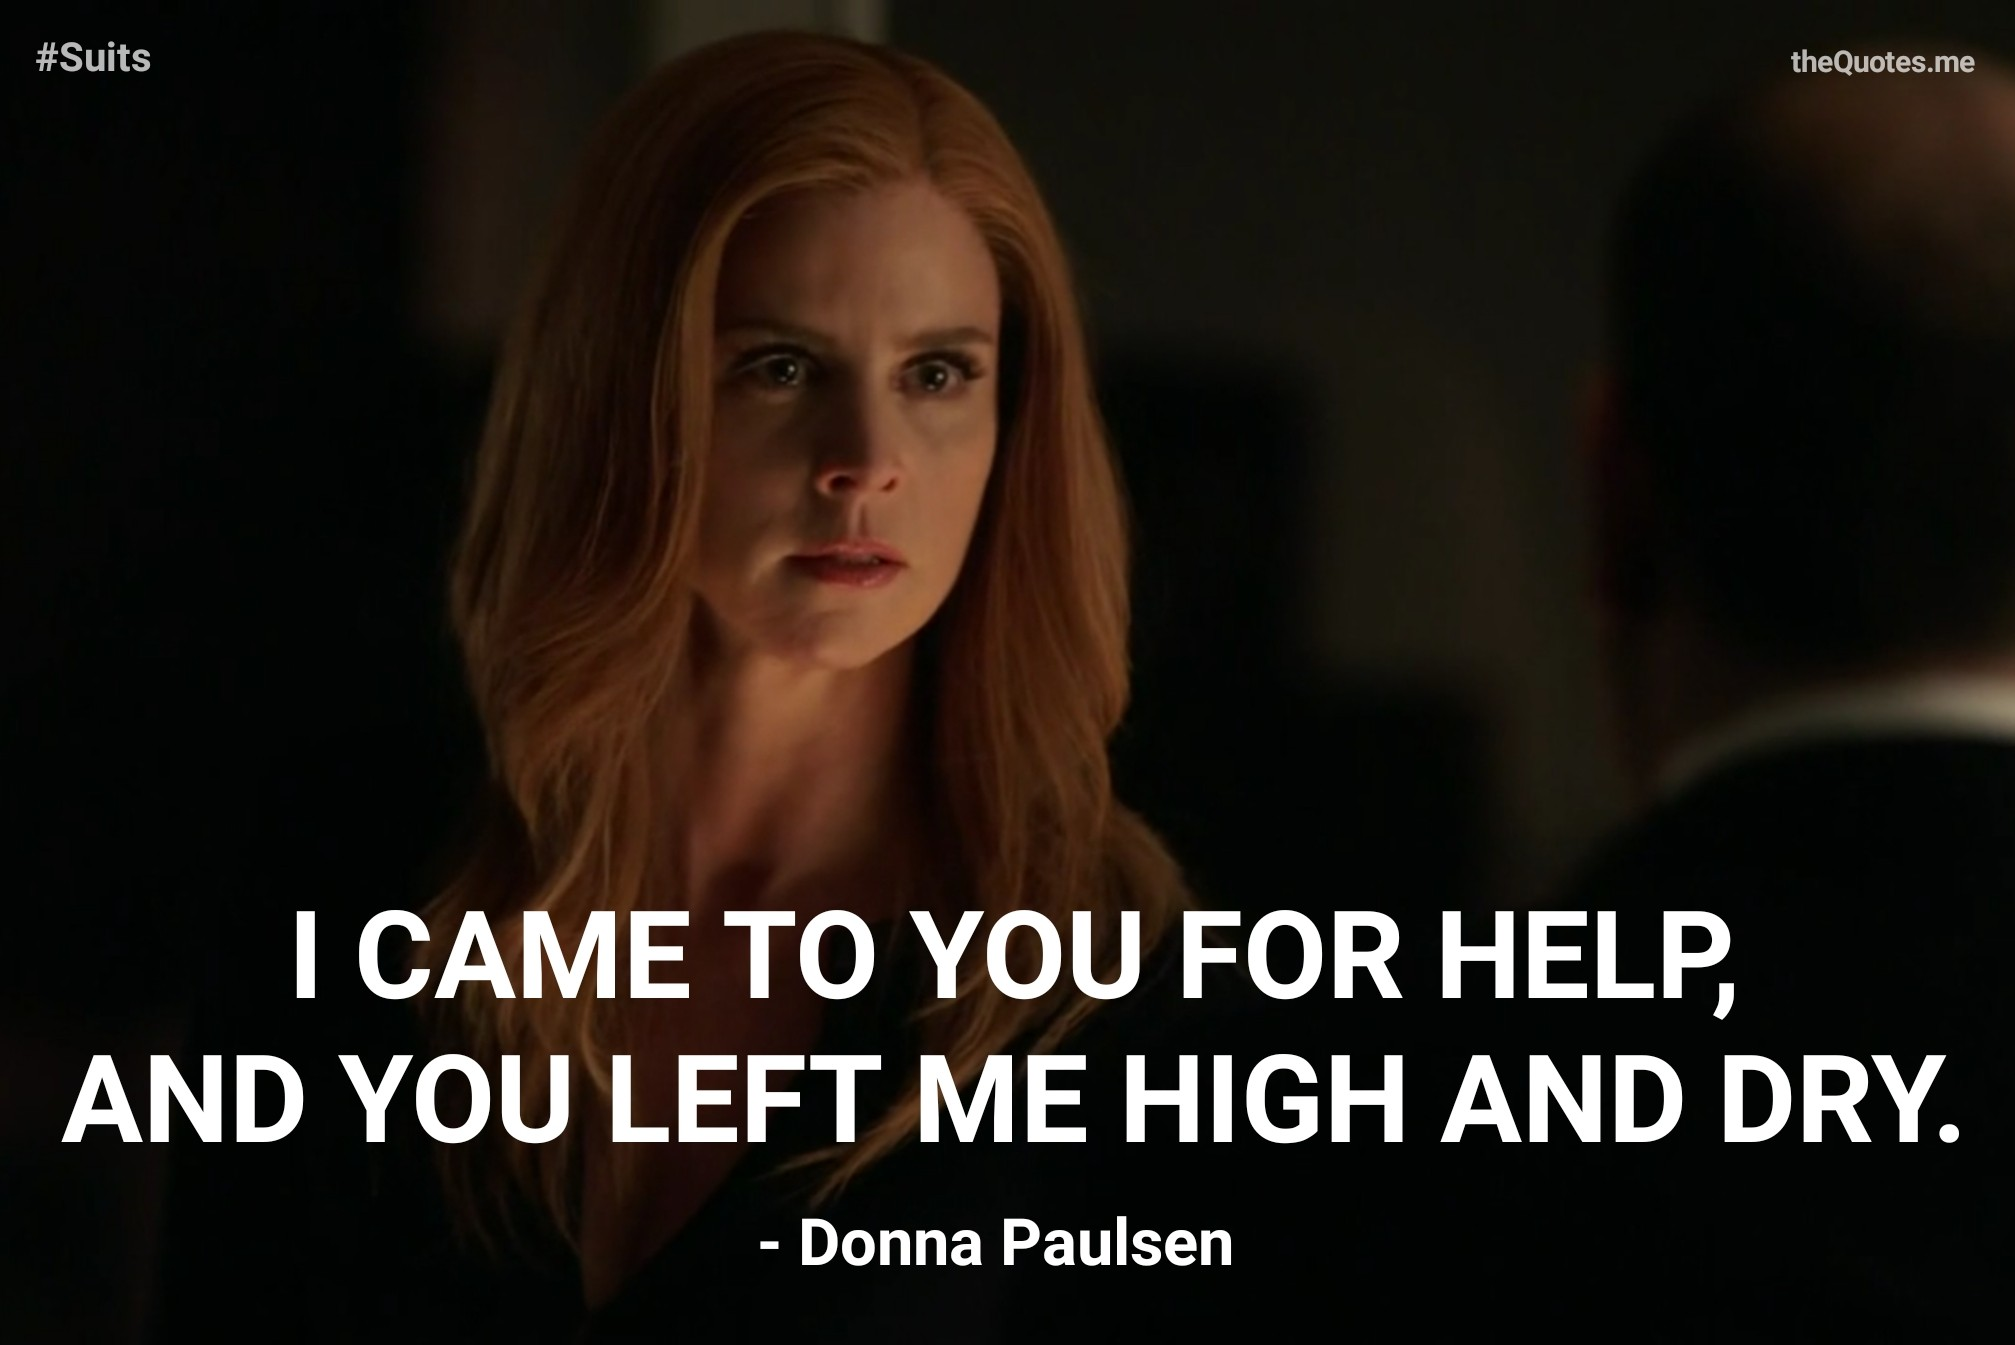 Suits TV Show Quotes – The Quotes